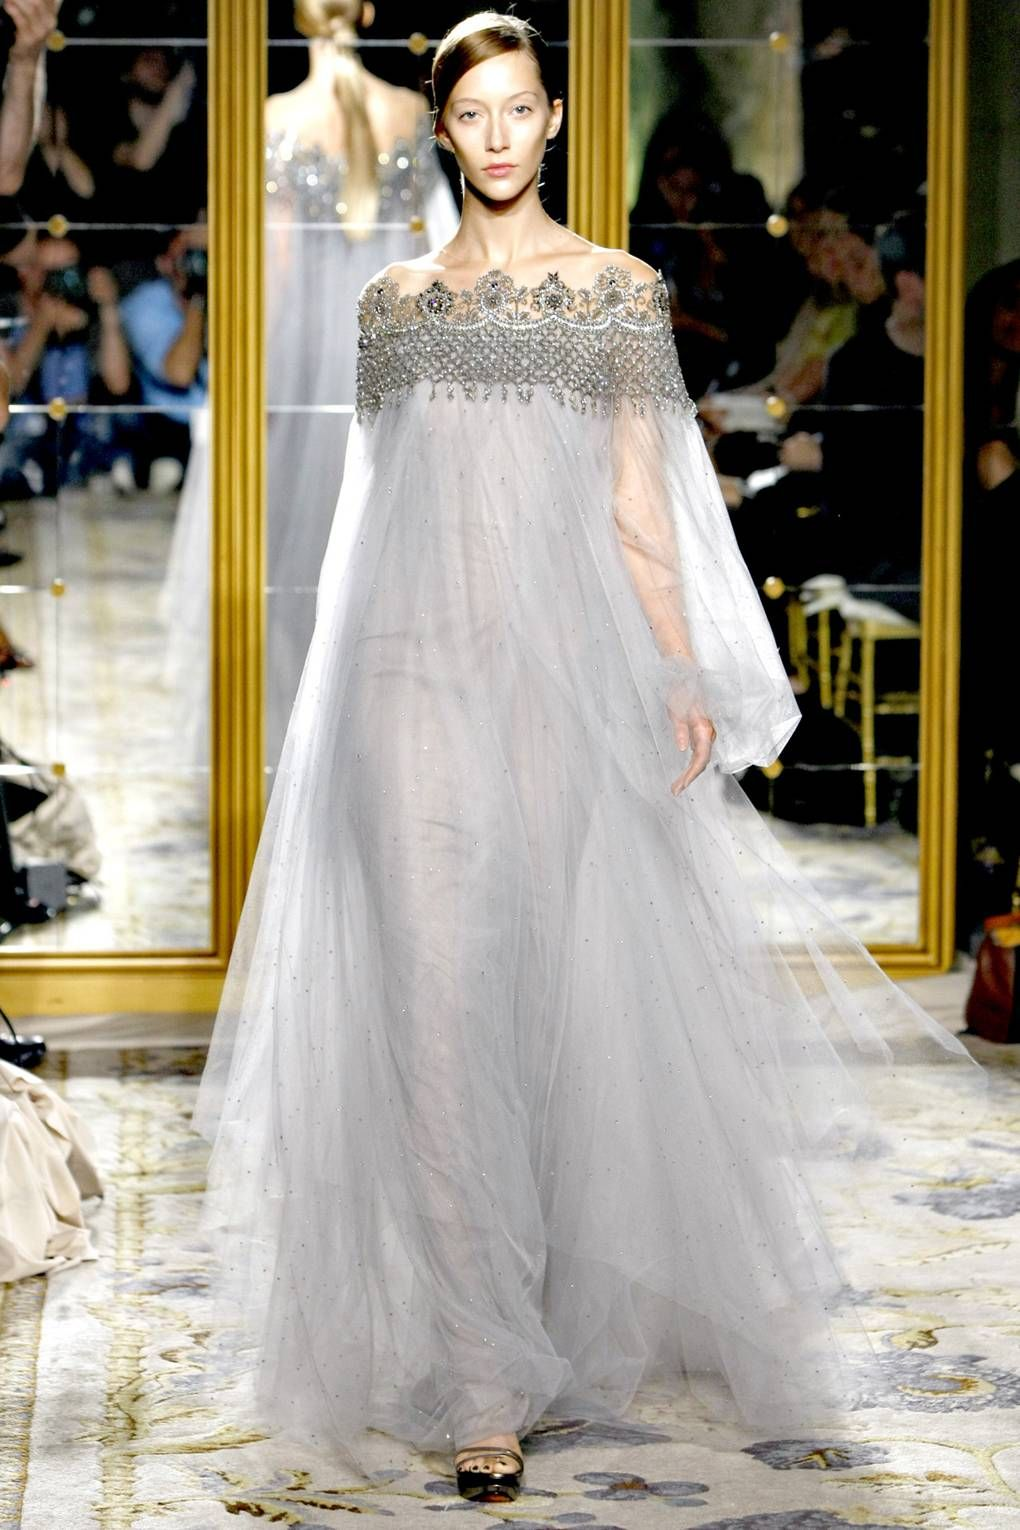 Blake Lively's Wedding Dress Details Gowns, Pretty